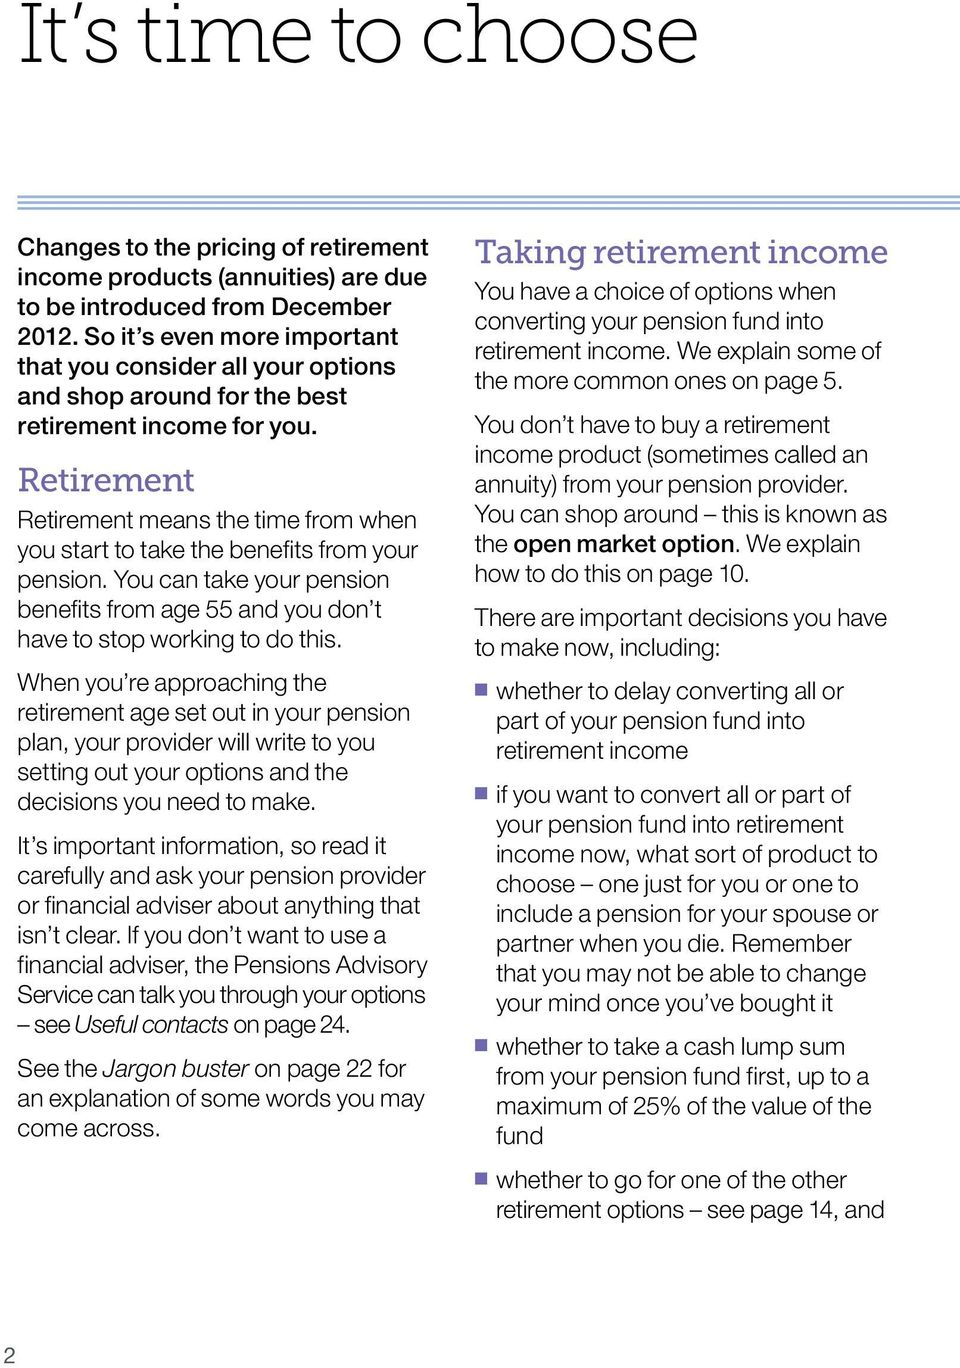 Retirement Retirement means the time from when you start to take the benefits from your pension. You can take your pension benefits from age 55 and you don t have to stop working to do this.